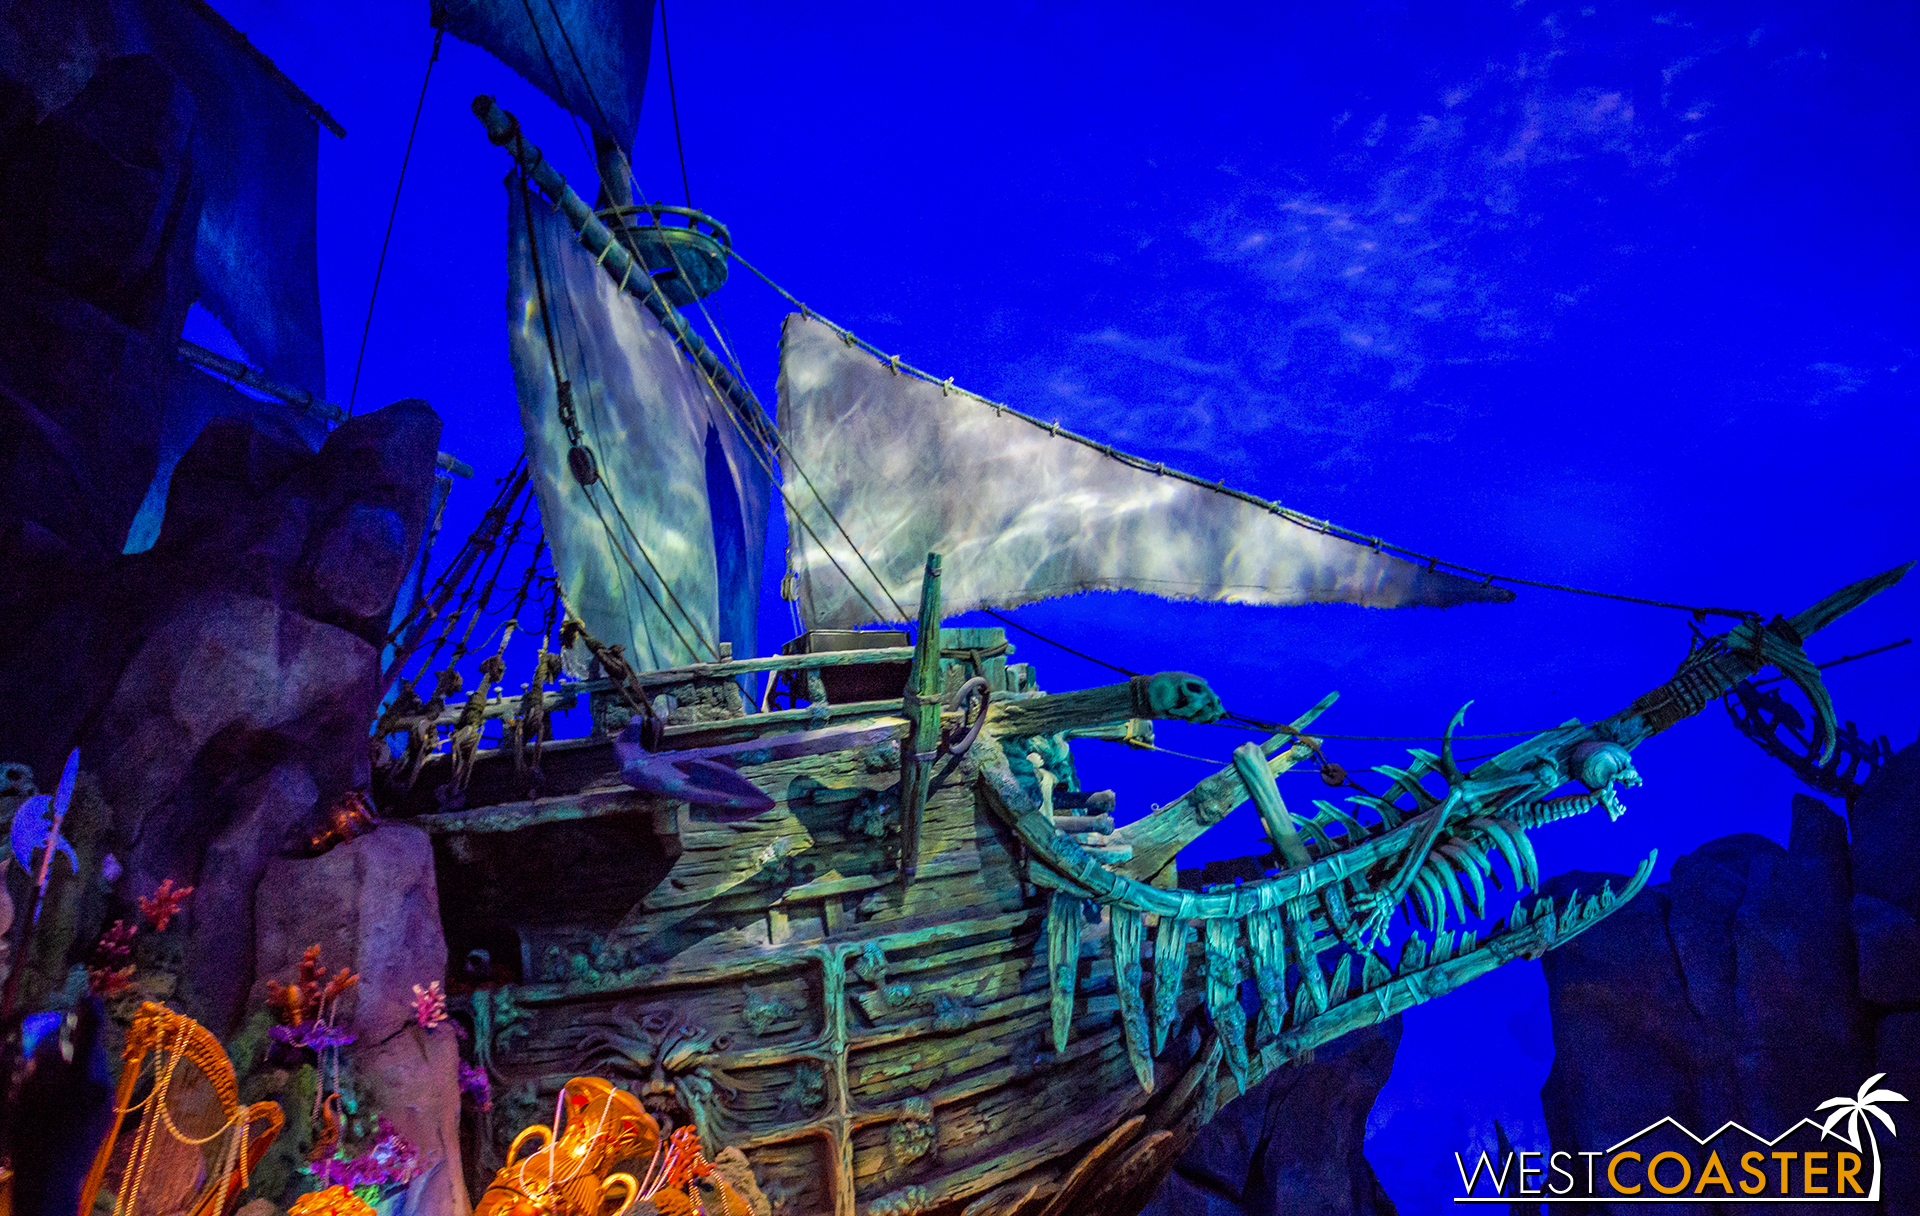 A scene from Pirates of the Caribbean: Battle for the Sunken Treasure.